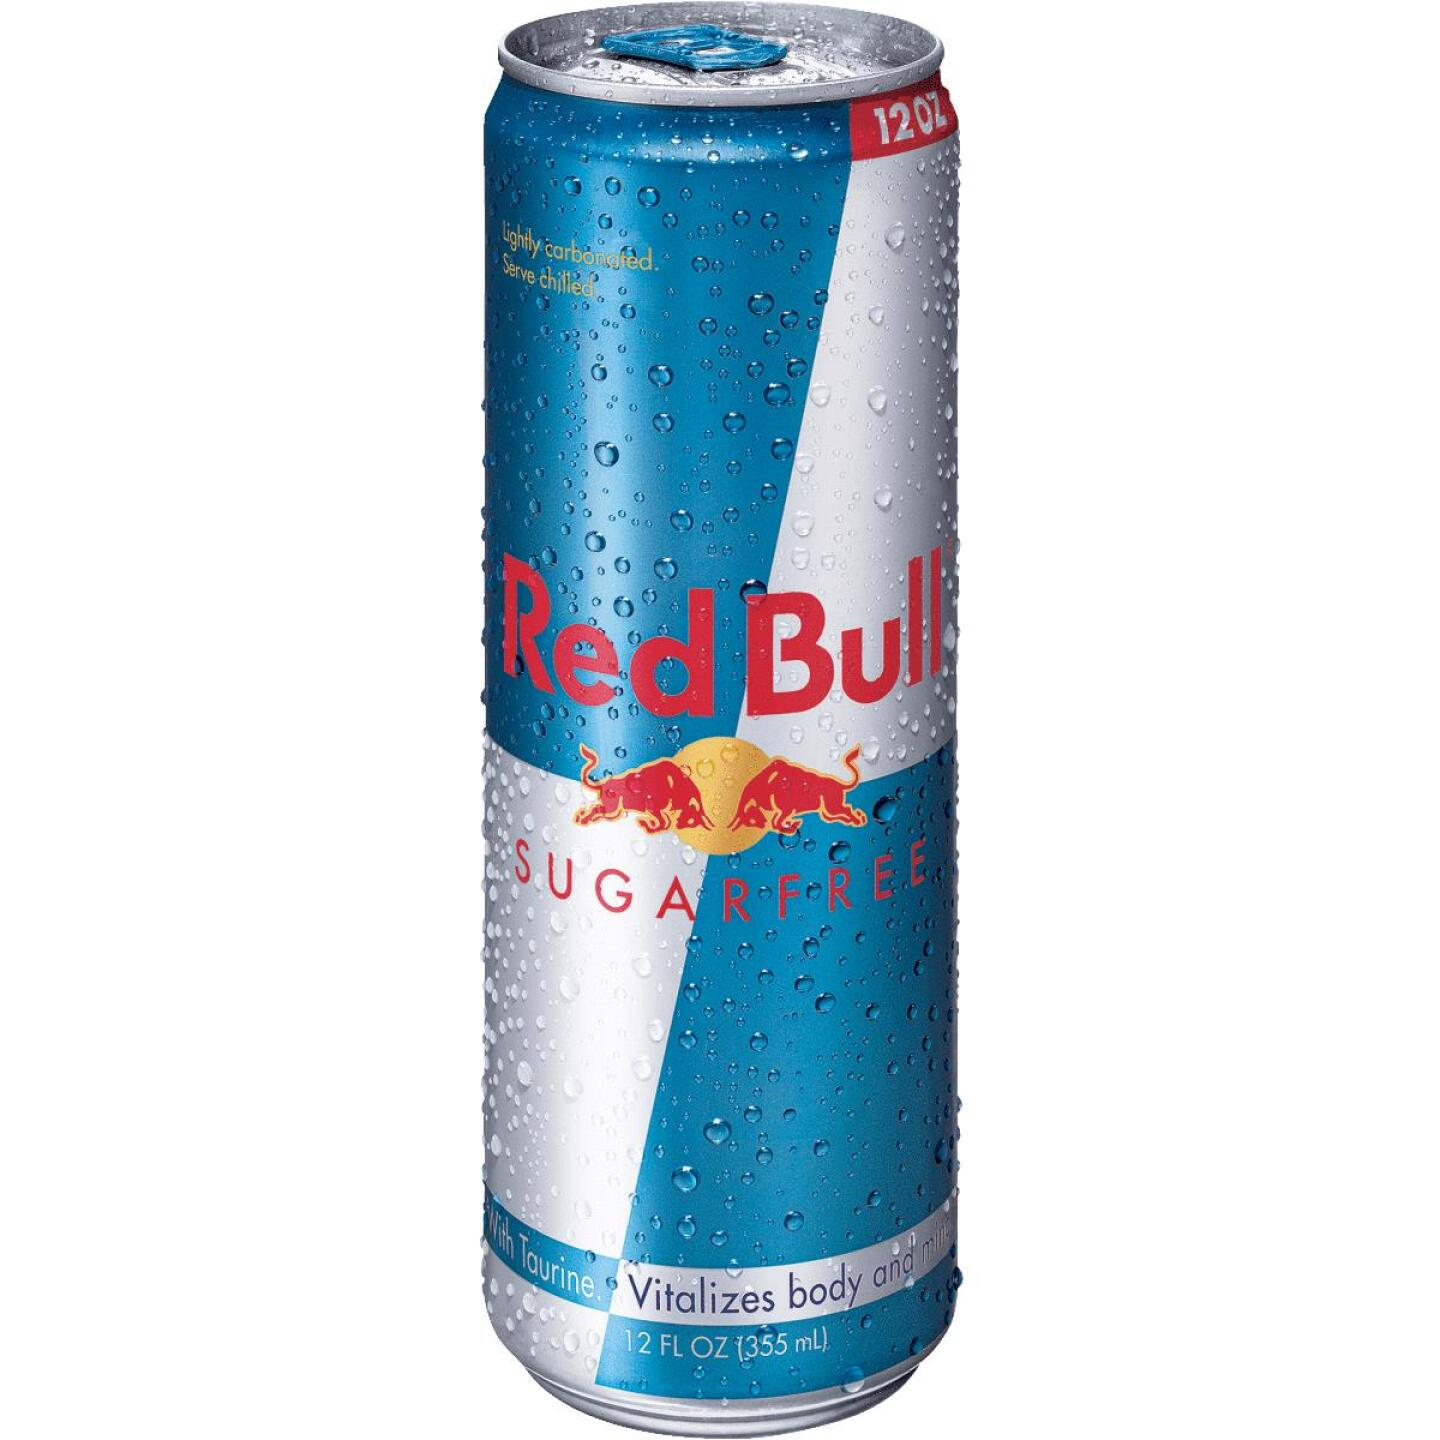 Red Bull 12 Oz. Sugar-Free Energy Drink Image 1